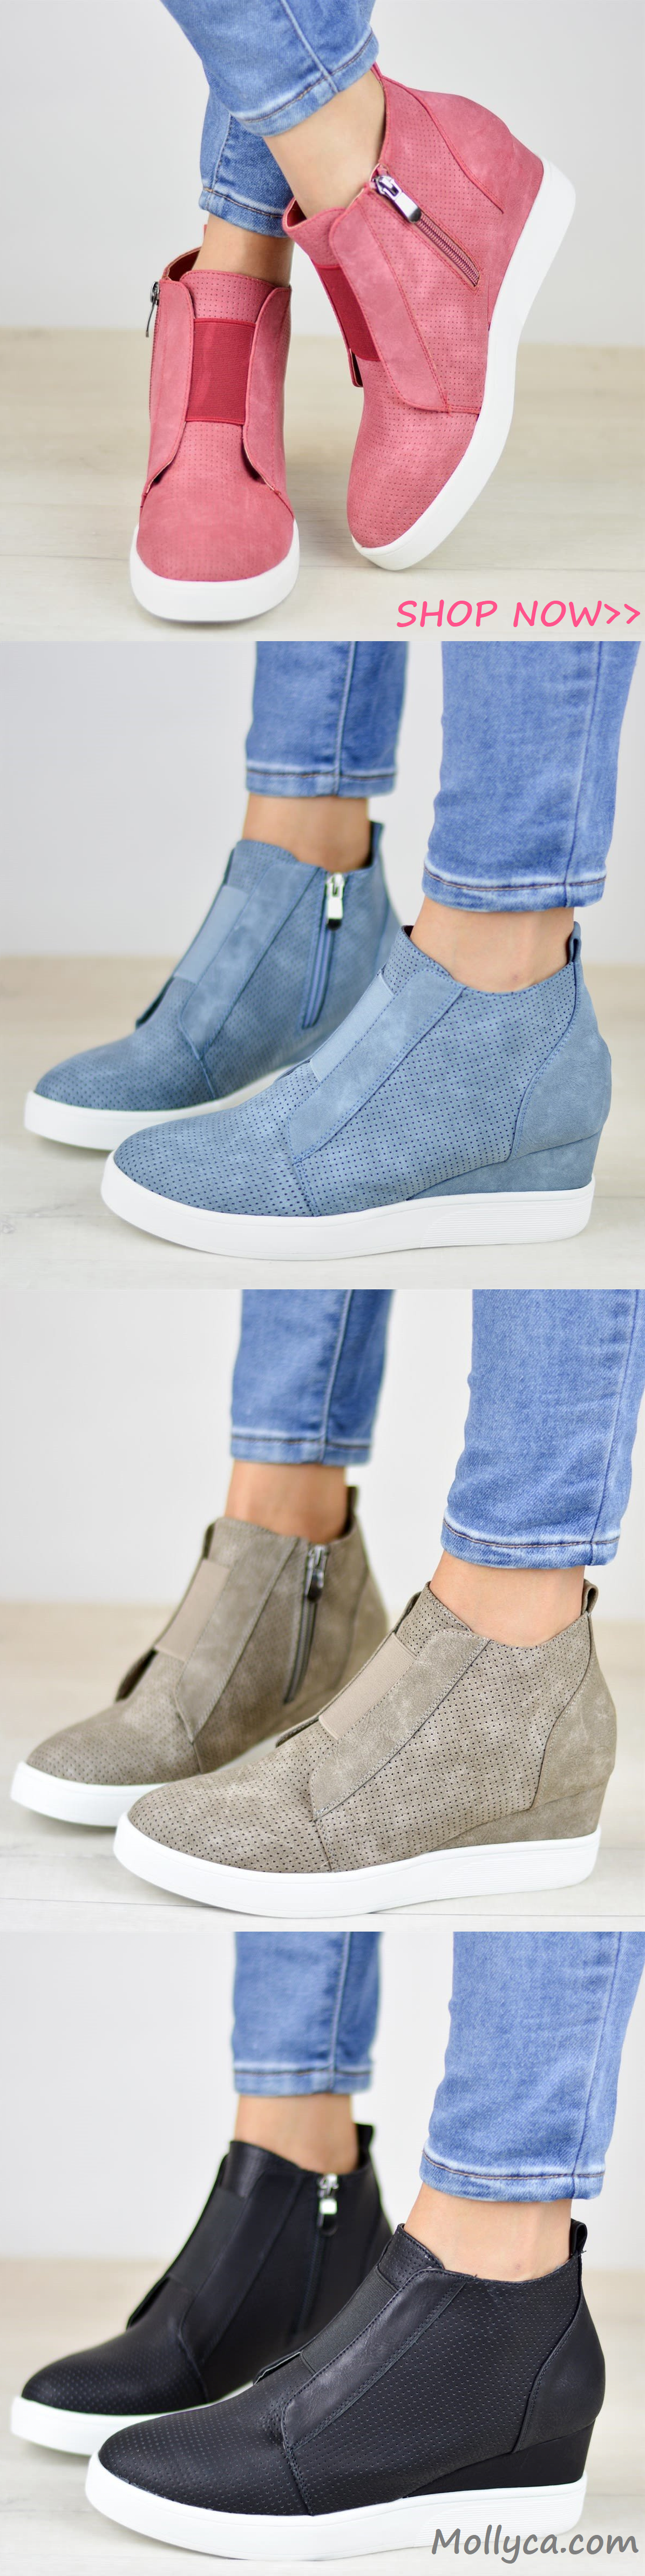 9b0eb1a9edda Free Shipping Comfort Zipper Wedge Sneakers Plus Size Wedges with Side  Zipper